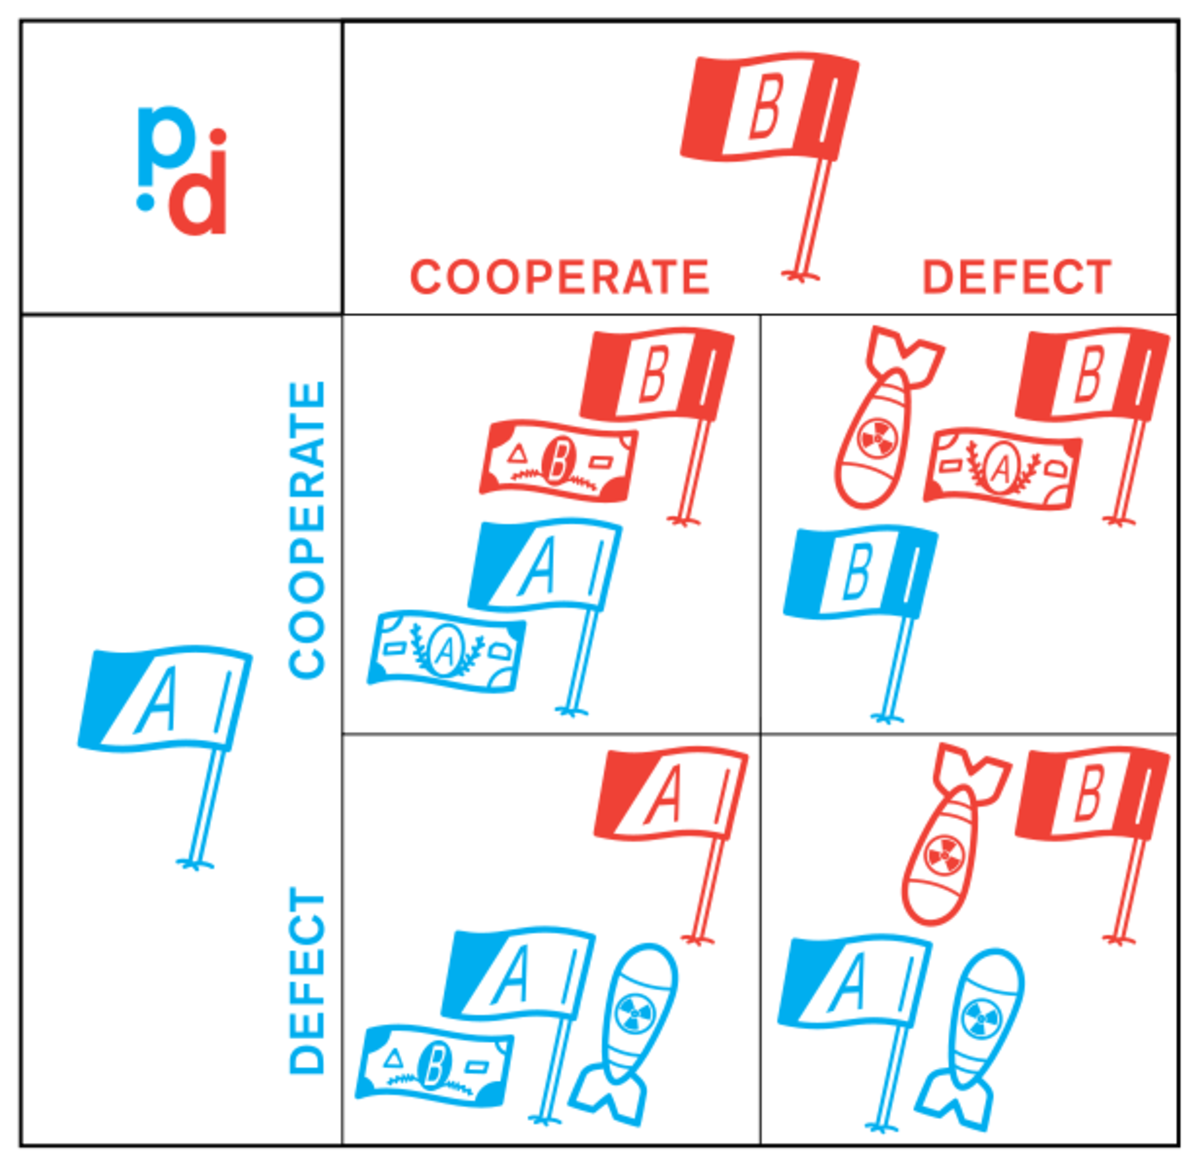 Decision matrix--cooperate or escalate?  Image by Christopher X. Jon Jensen and Greg Riestenberg, courtesy of Wikimedia Commons.